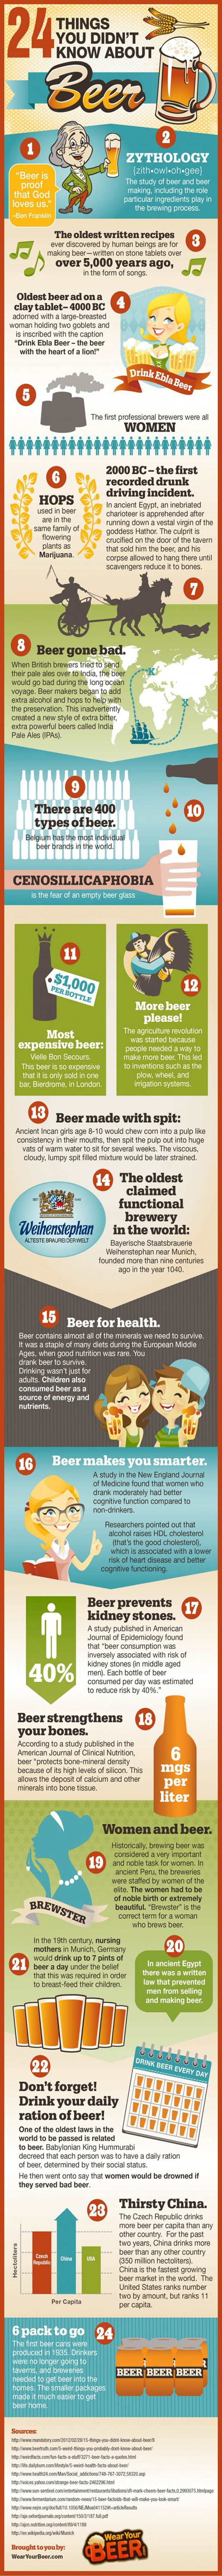 things you didn't know about beer